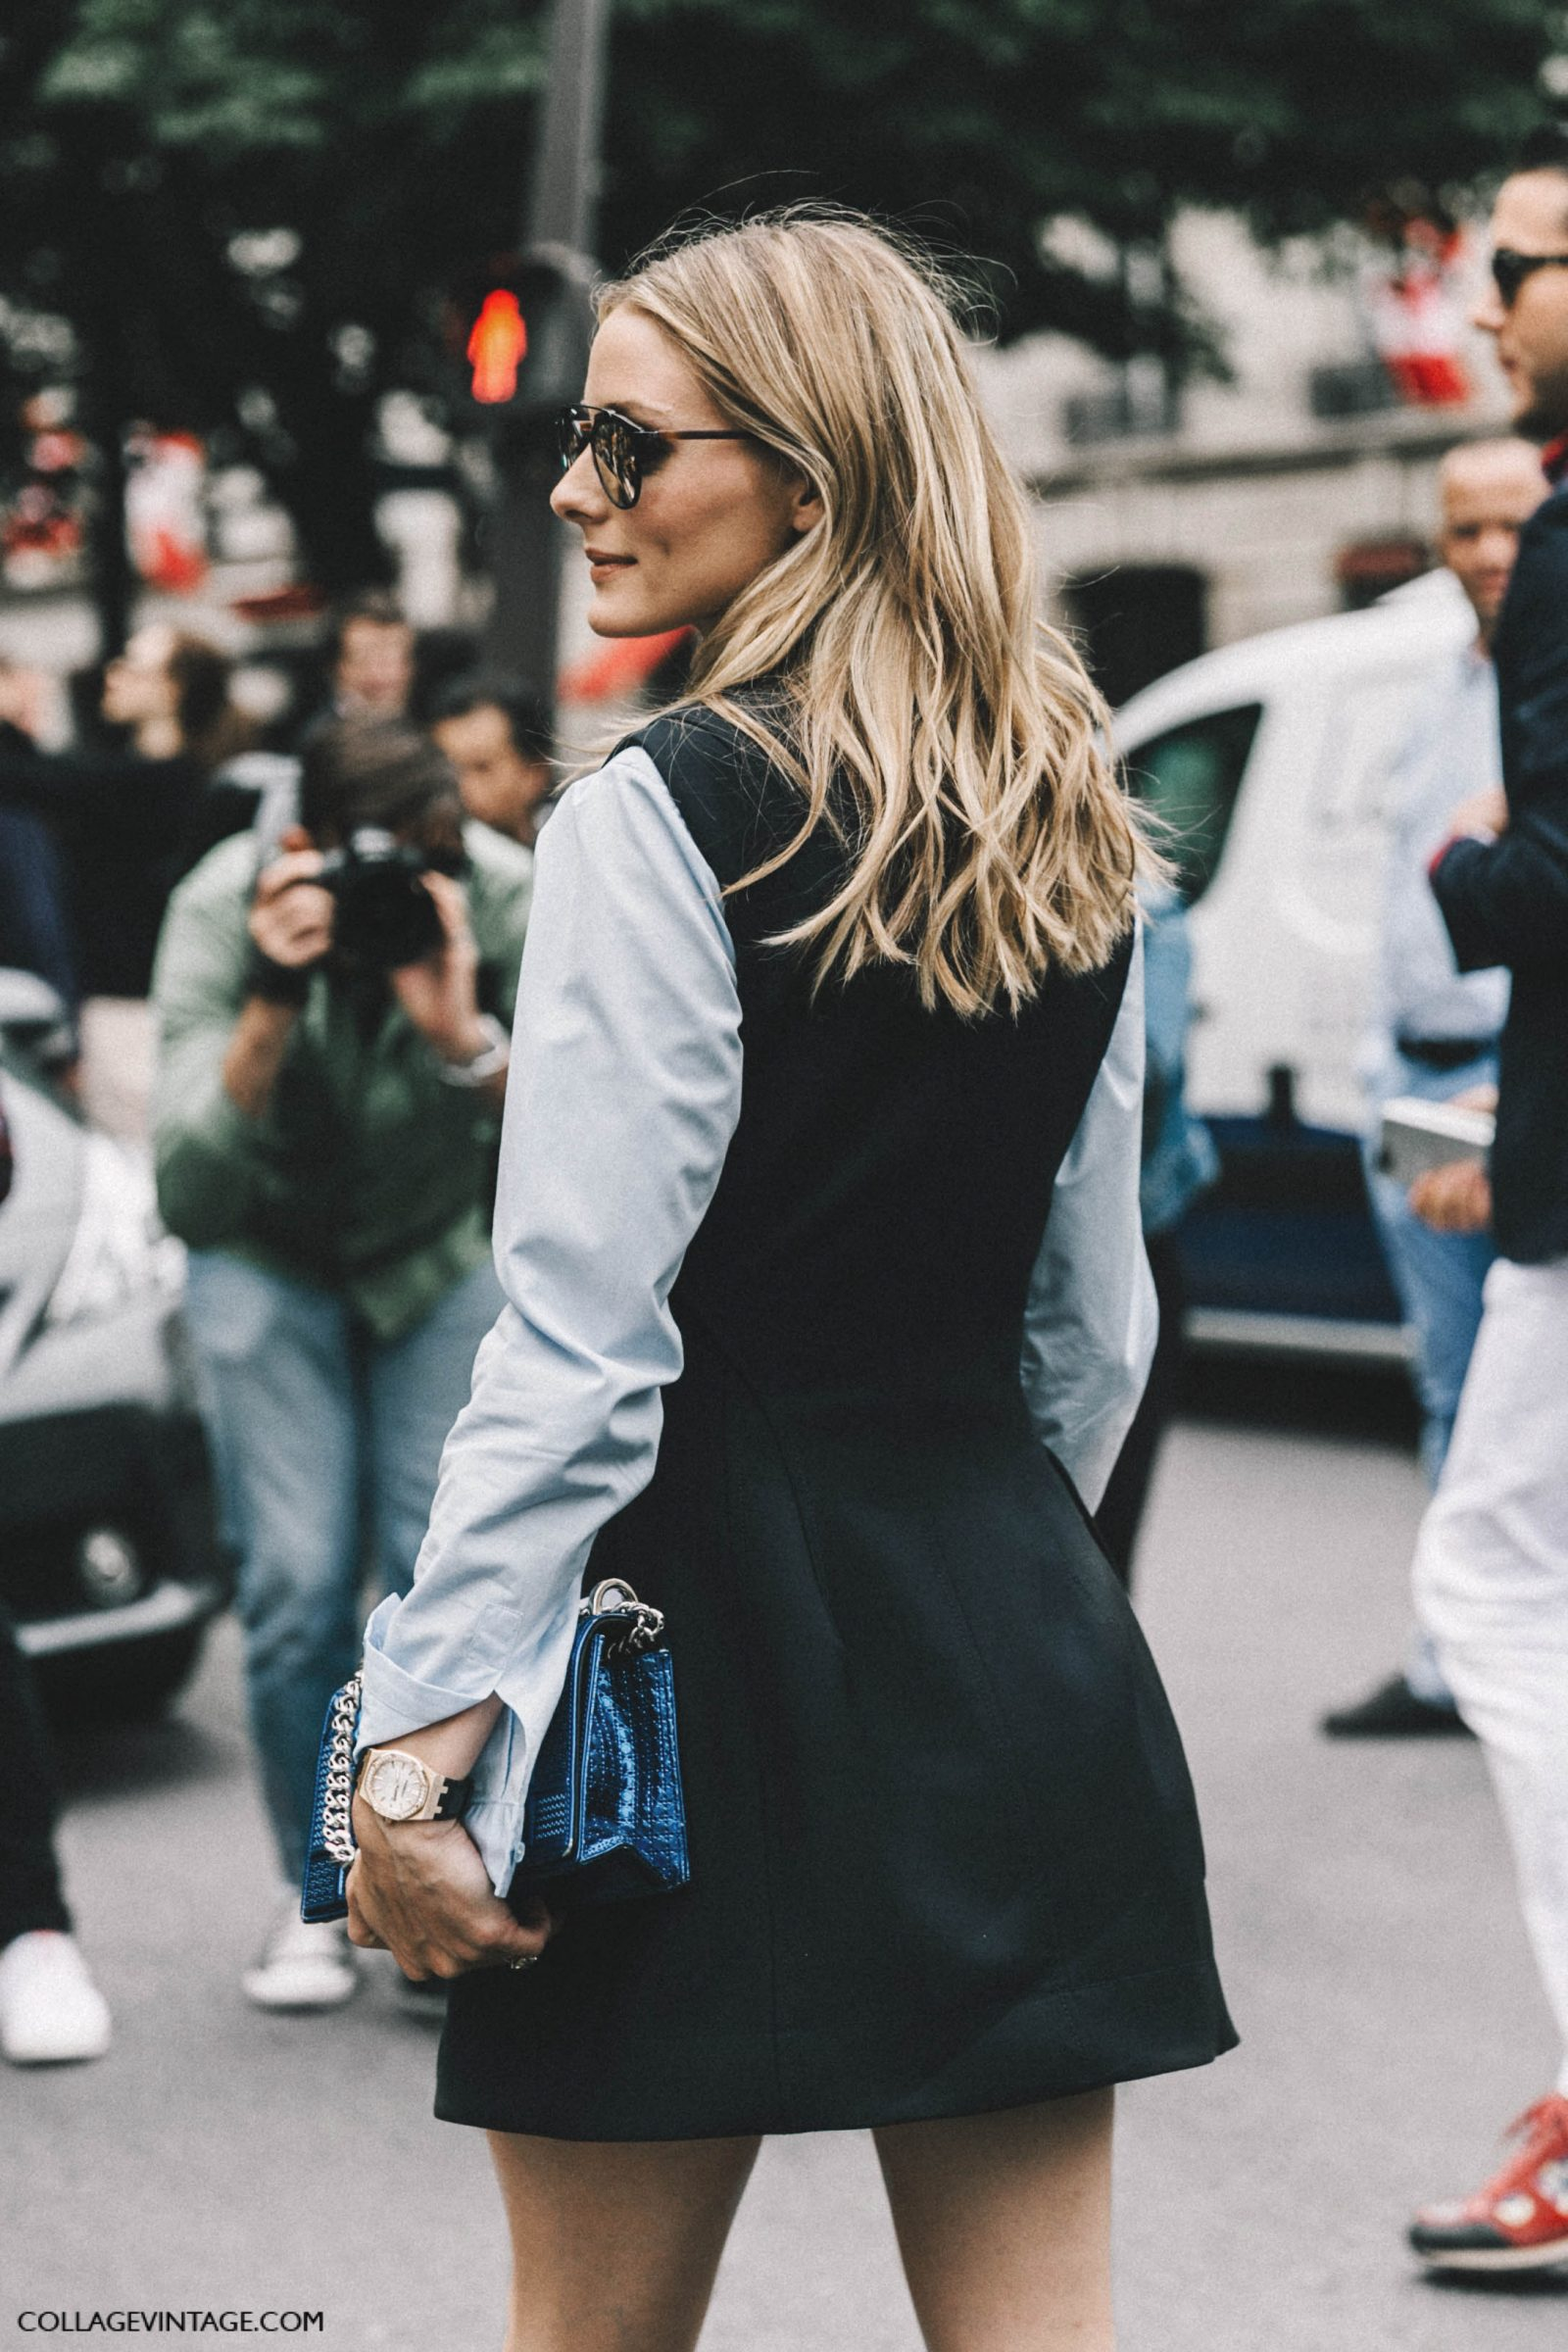 Paris_Couture_Fashion_Week-Collage_Vintage-Street_Style-98